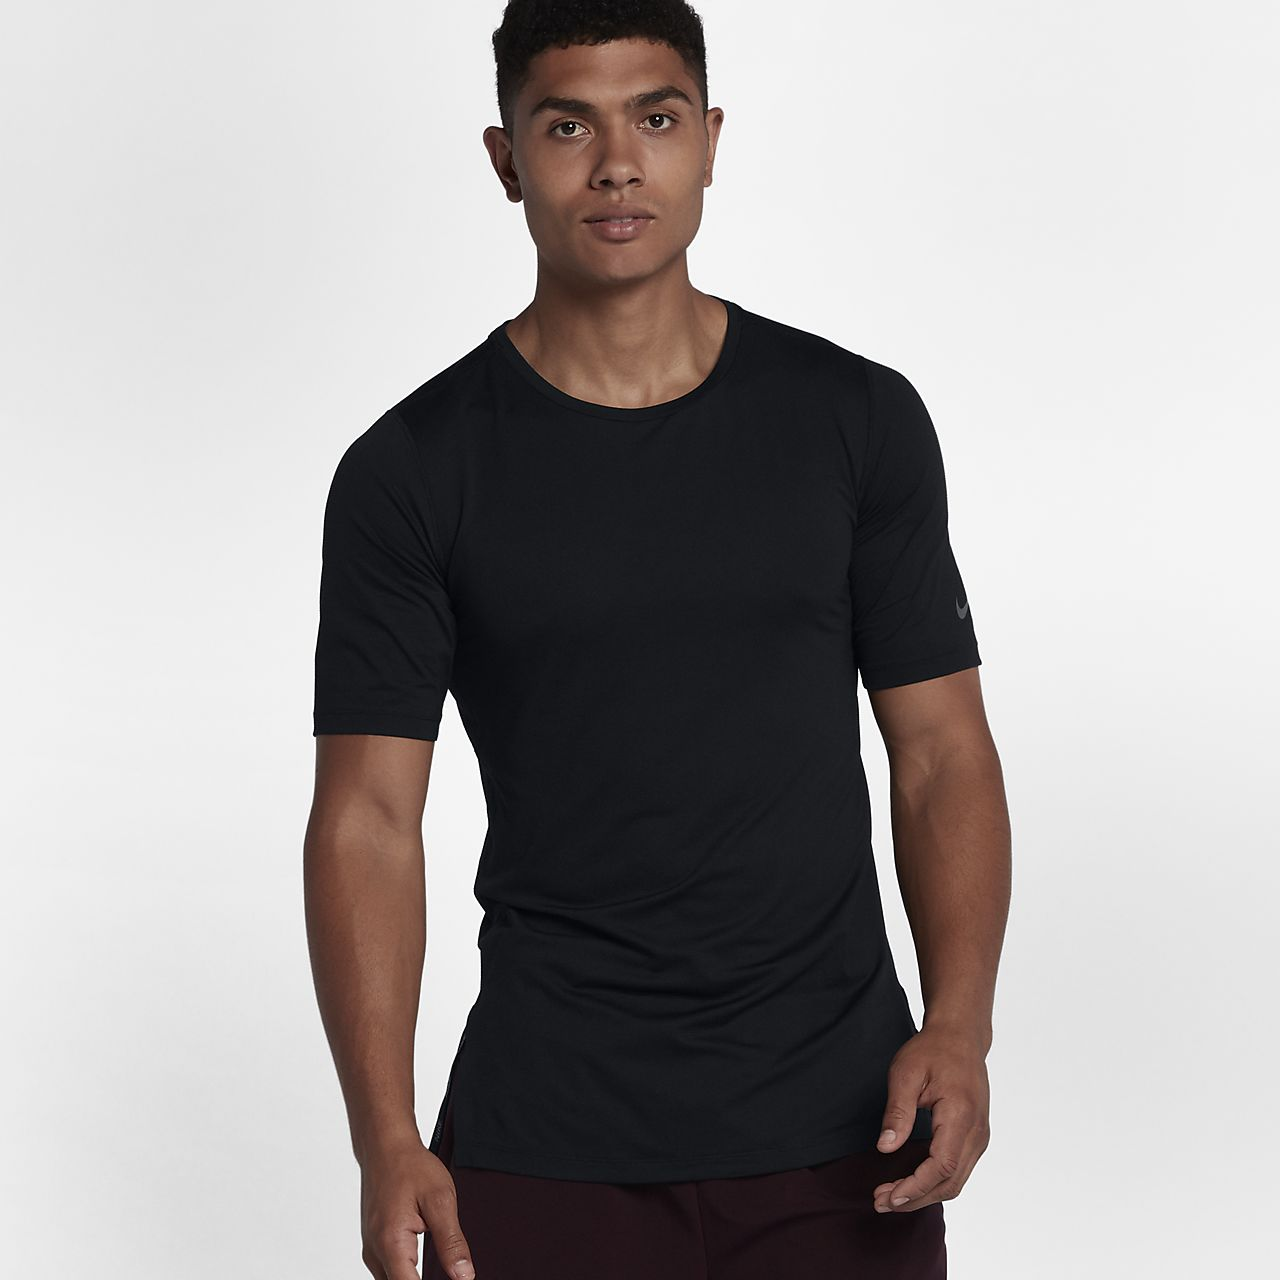 Nike Dri-FIT Men's Utility Short-Sleeve Training Top